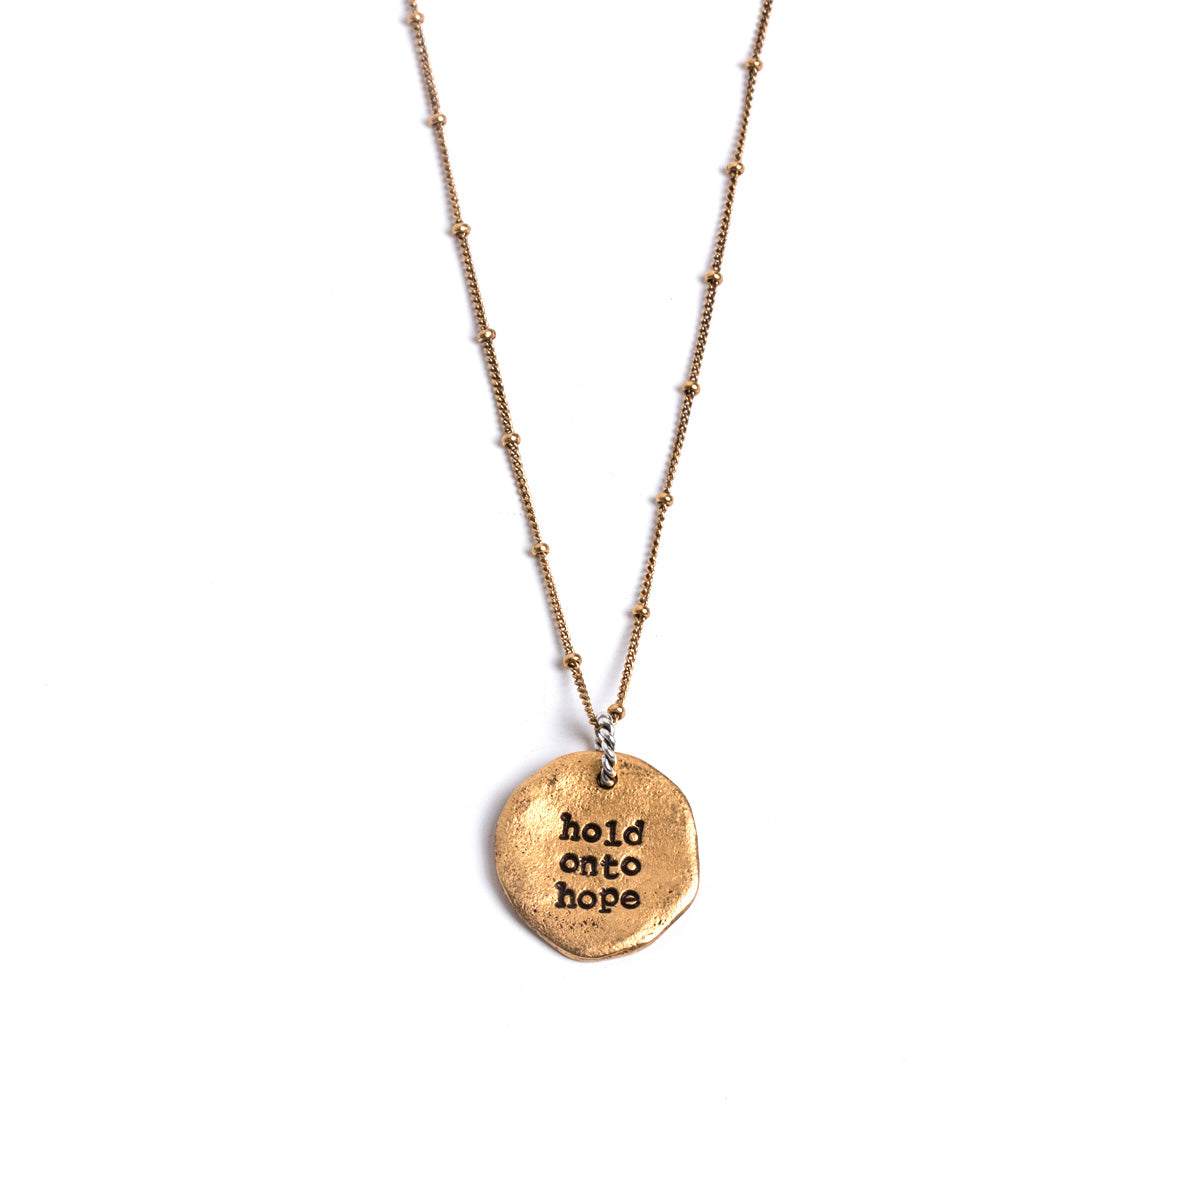 Hold Onto Hope Damascus Necklace